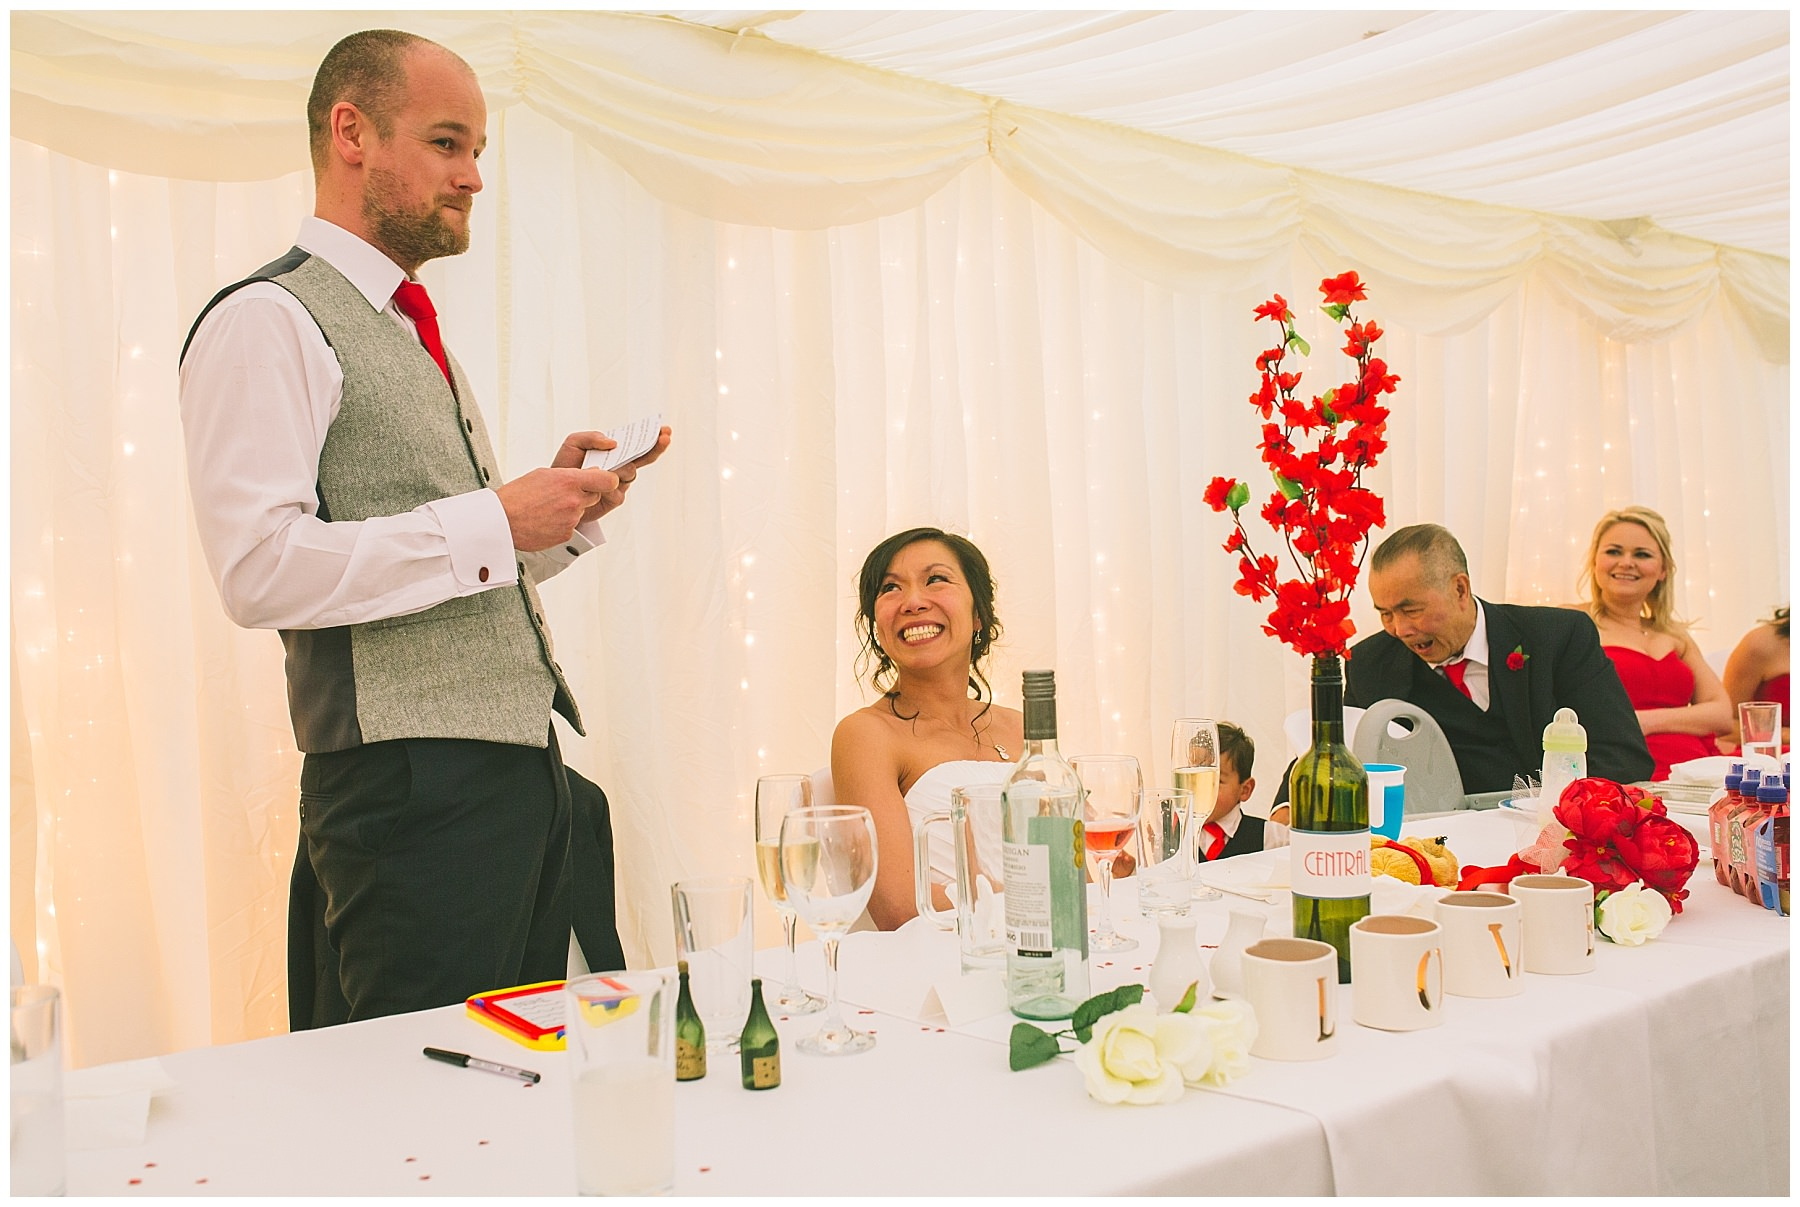 The groom speaks at Pentre Mawr